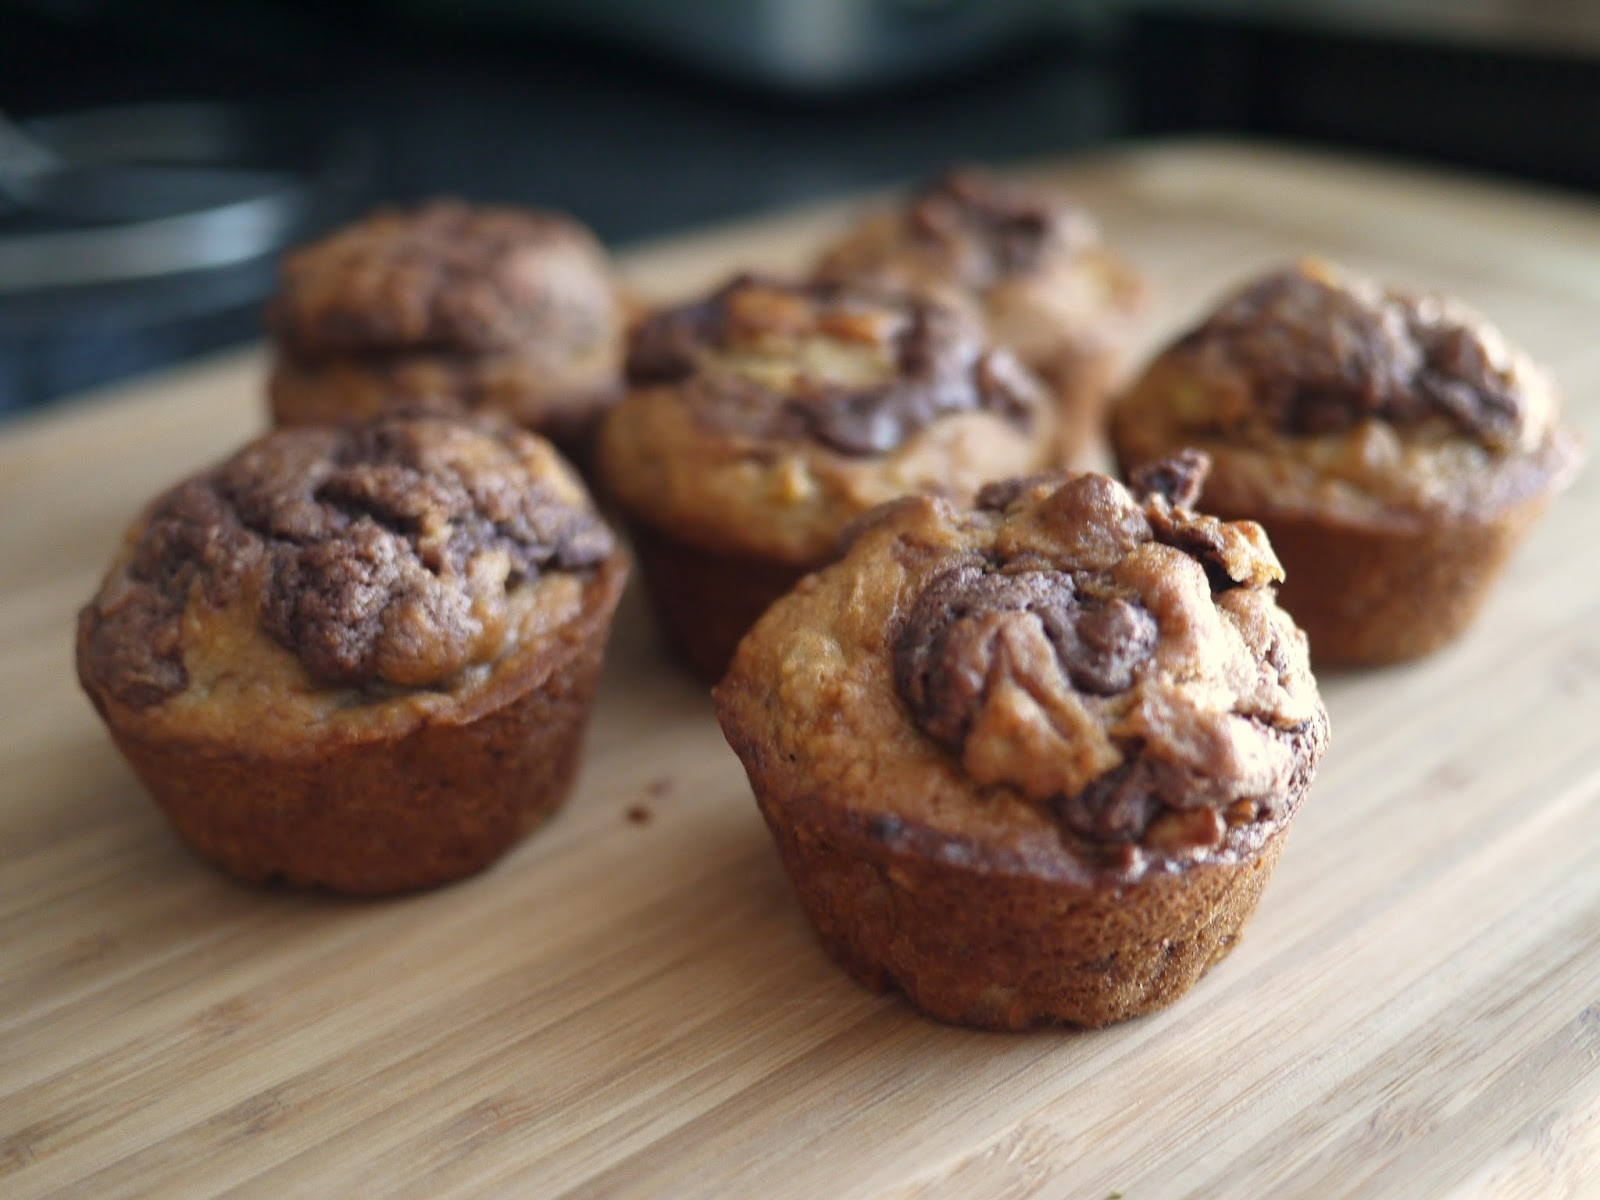 Hazelnut swirl banana nut muffins the tasteful me the recipe is adapted from tyler florence on food network but with a twist chocolaty swirl three ripe bananas ensure soft moist bites every time a forumfinder Images